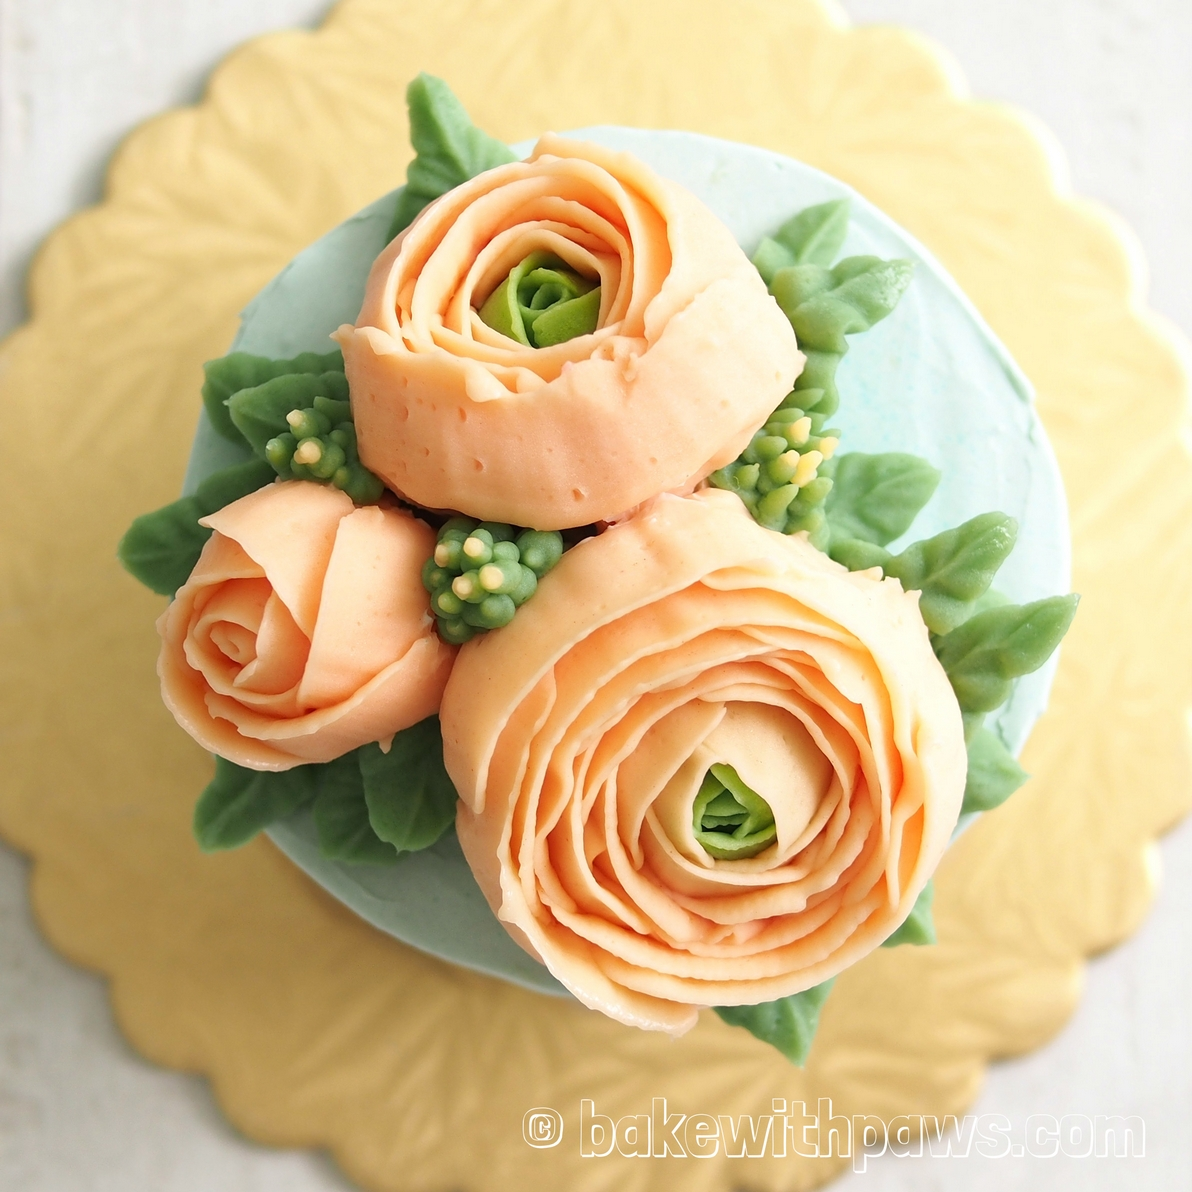 Korean Style Buttercream Flowers Cake - 2 - BAKE WITH PAWS